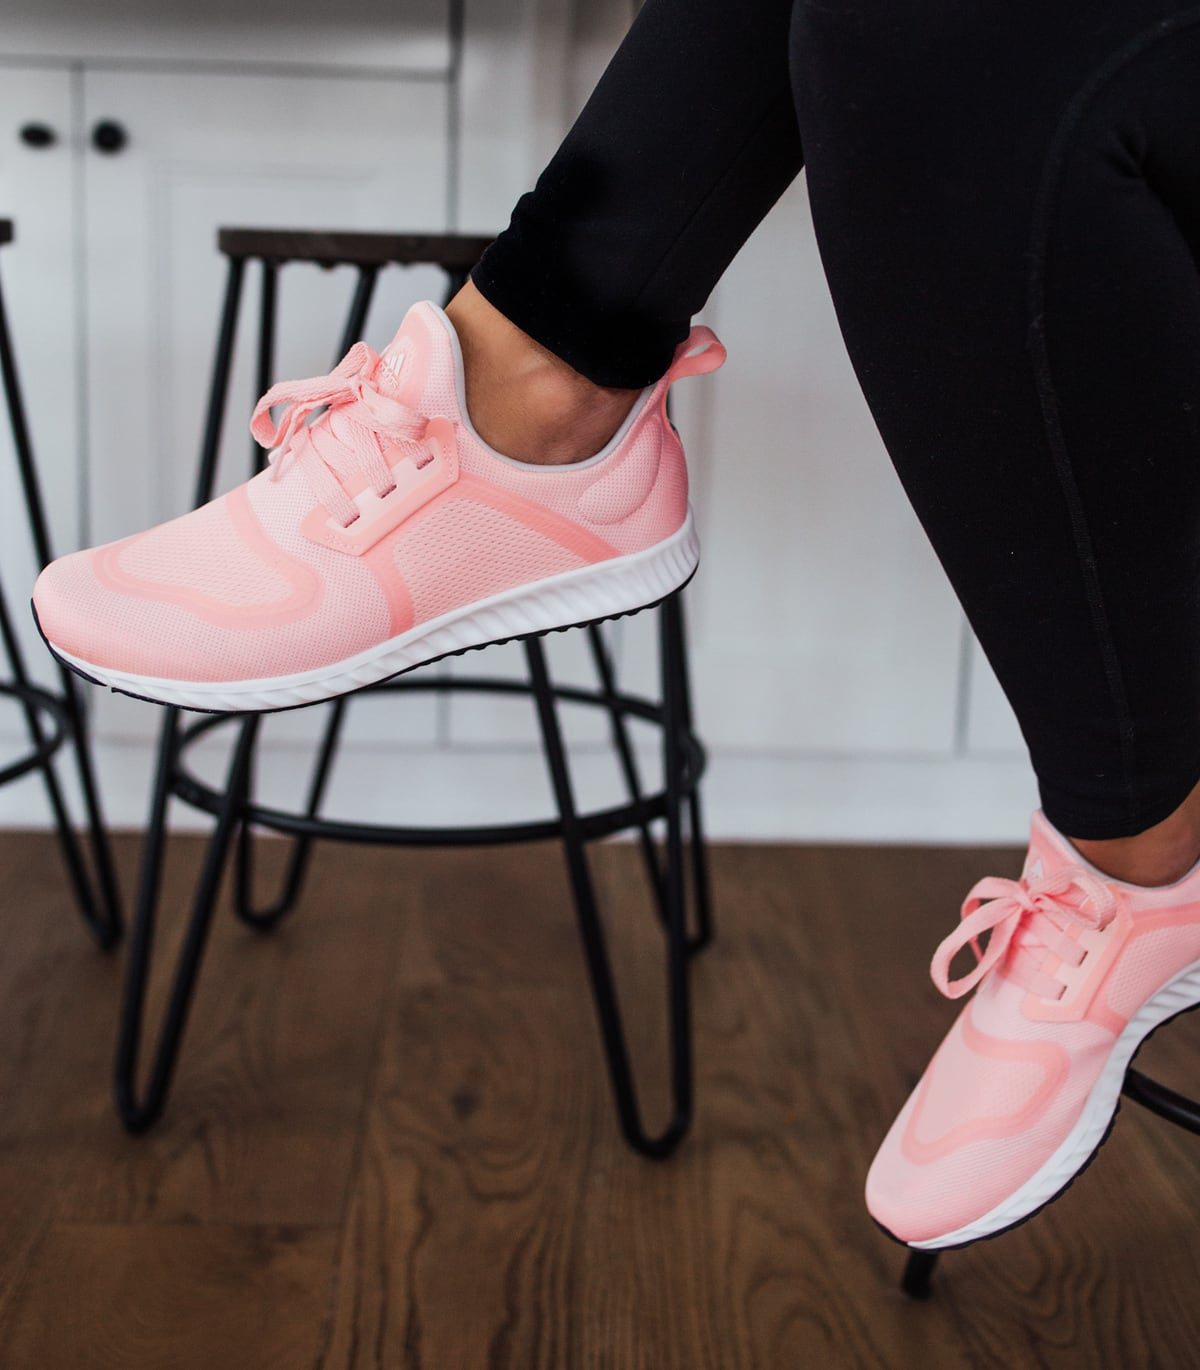 nordstrom anniversary sale pink running shoes